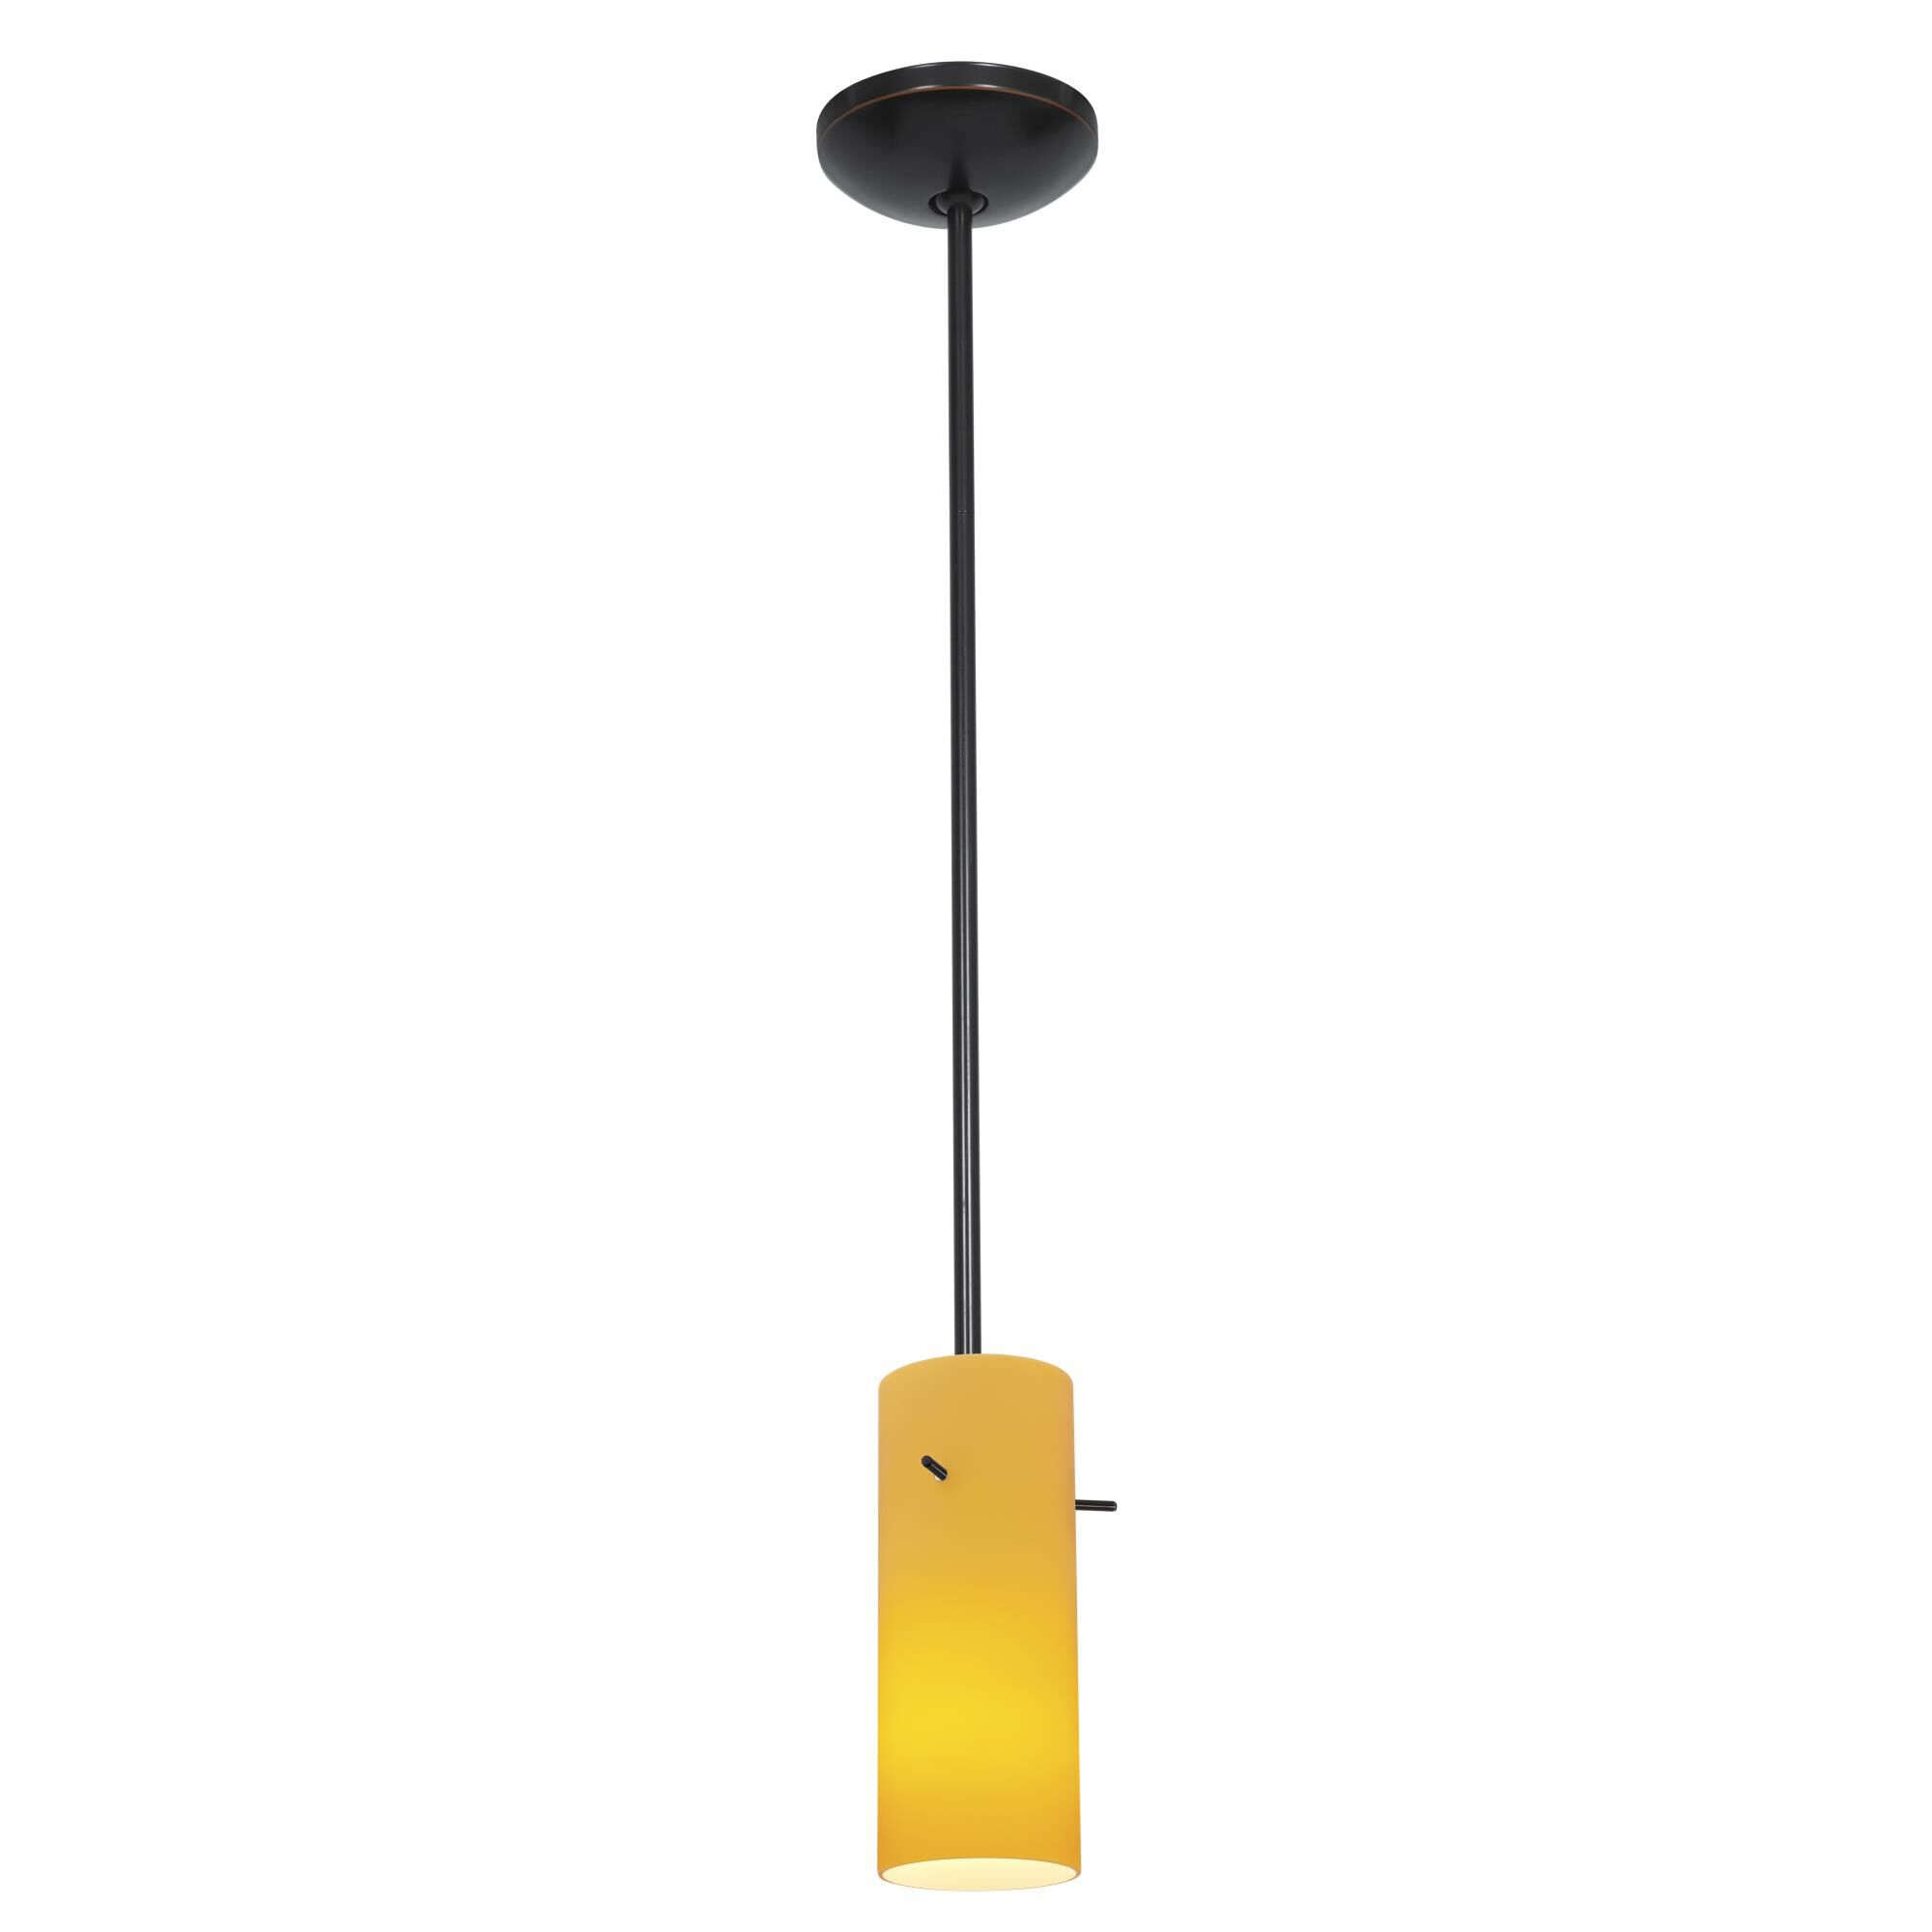 Access Lighting Cylinder LED Mini Pendant Cylinder 28030 4R ORBAMB Modern Contemporary